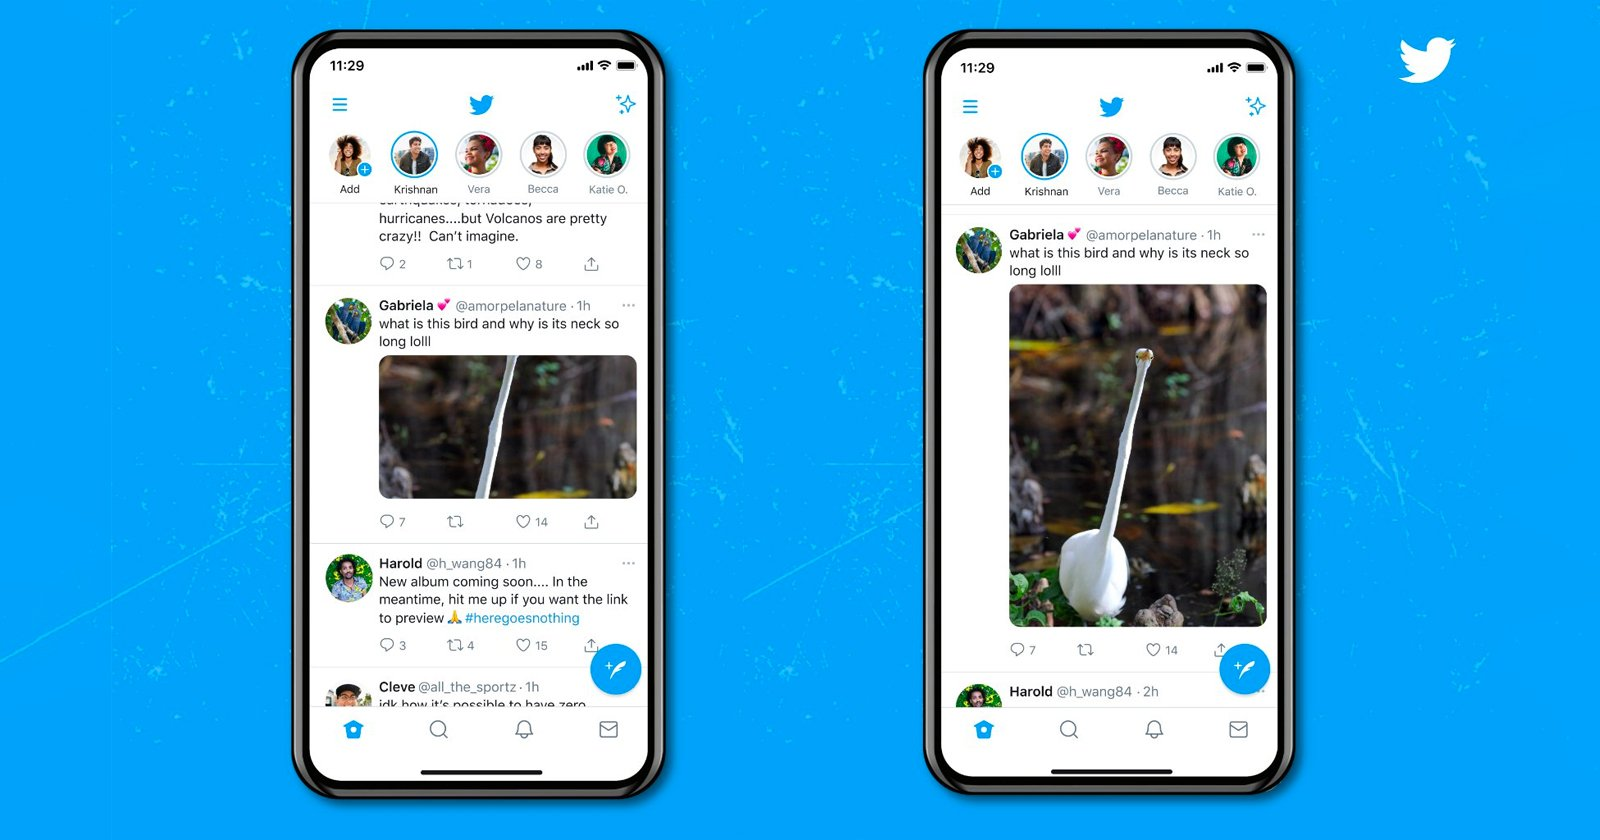 Rejoice! Twitter Finally Rolls Out Full-Size Images in Mobile Feeds